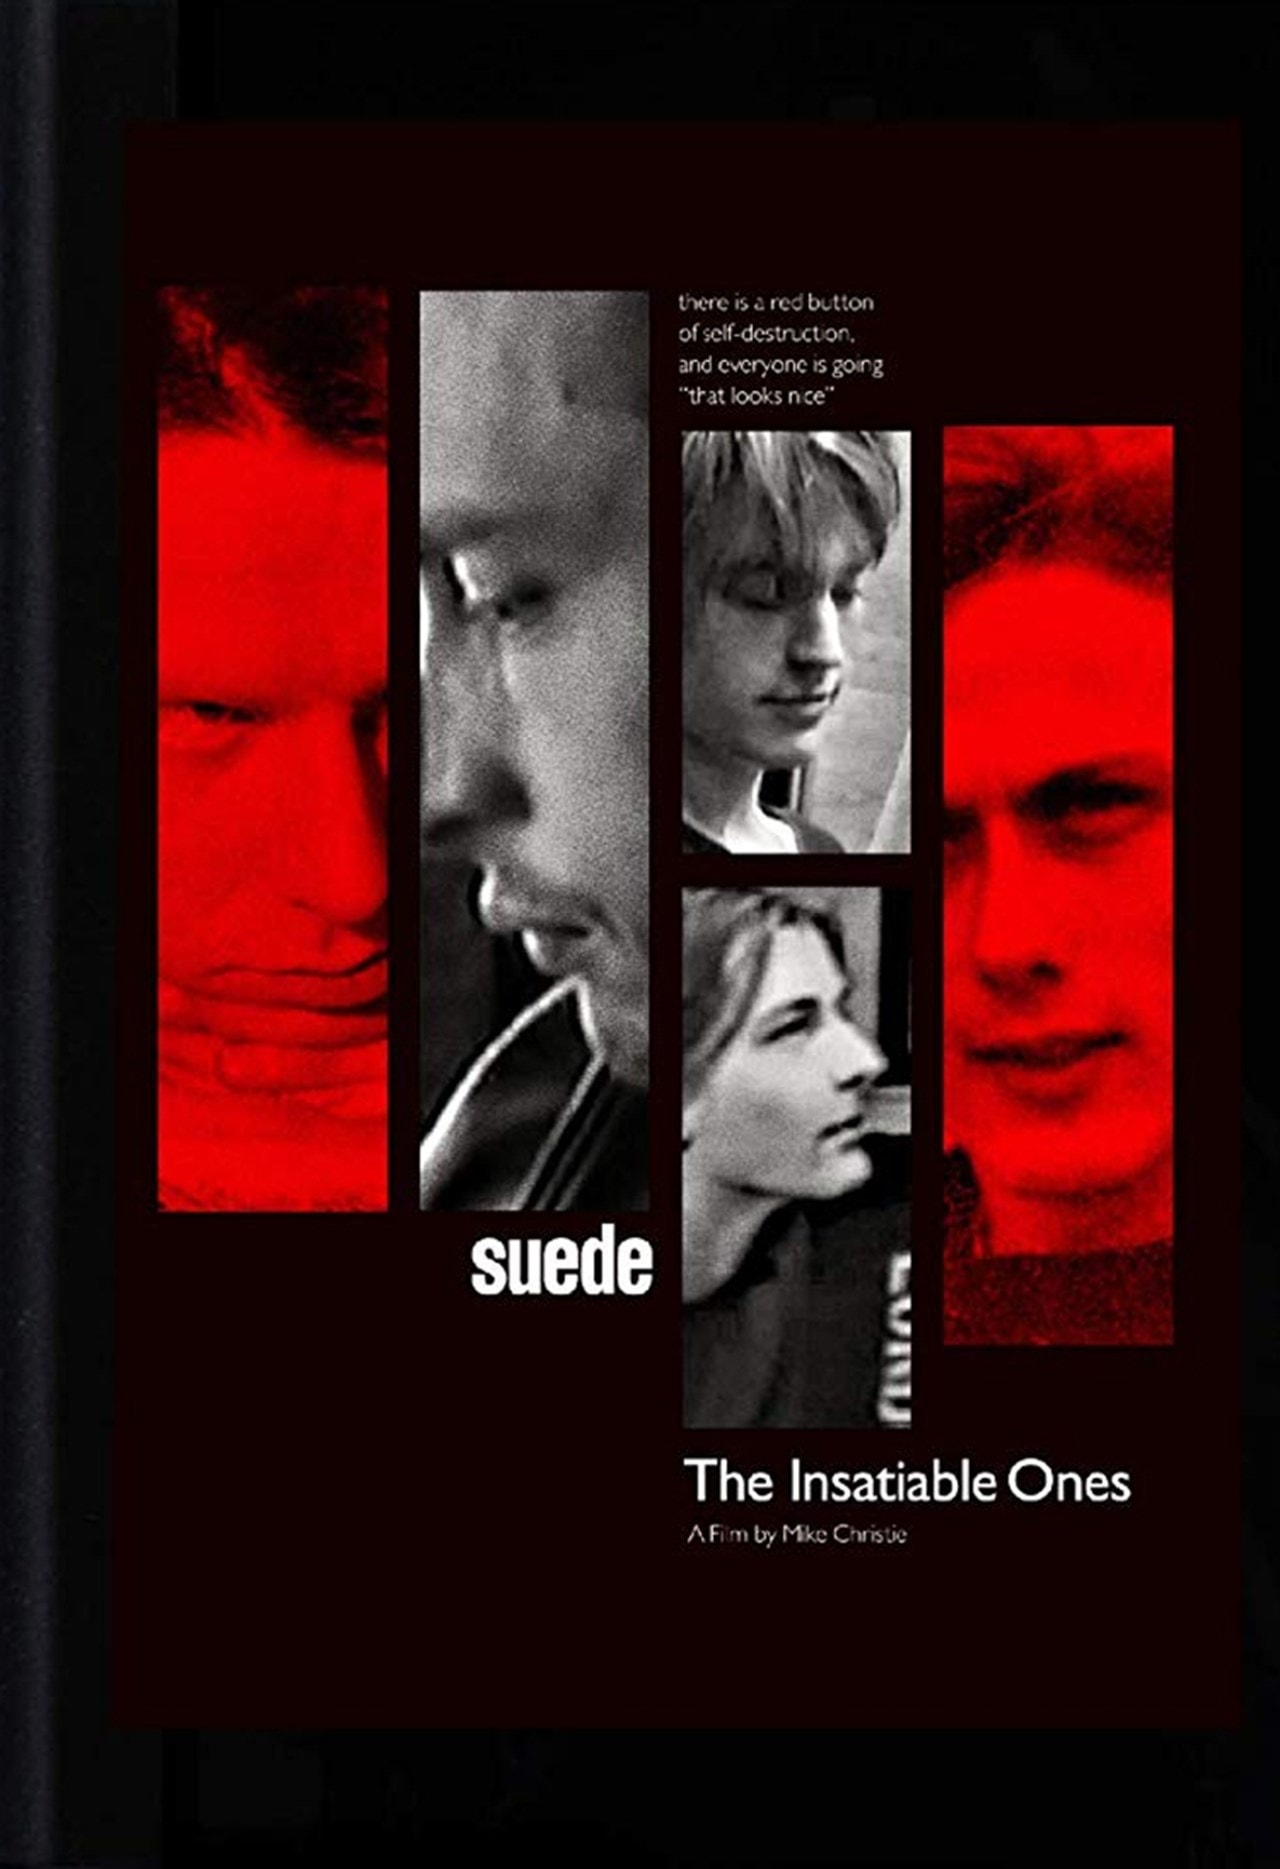 Suede: The Insatiable Ones - 1